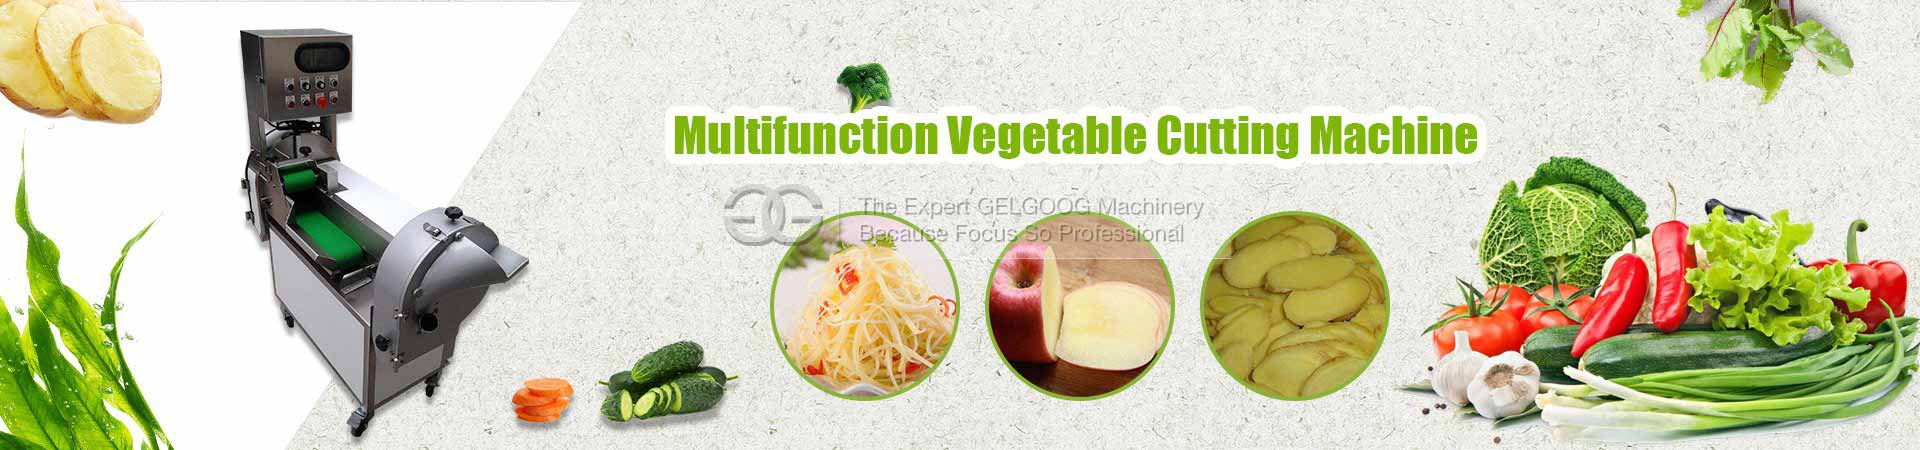 Multifunction Vegetable Cutting